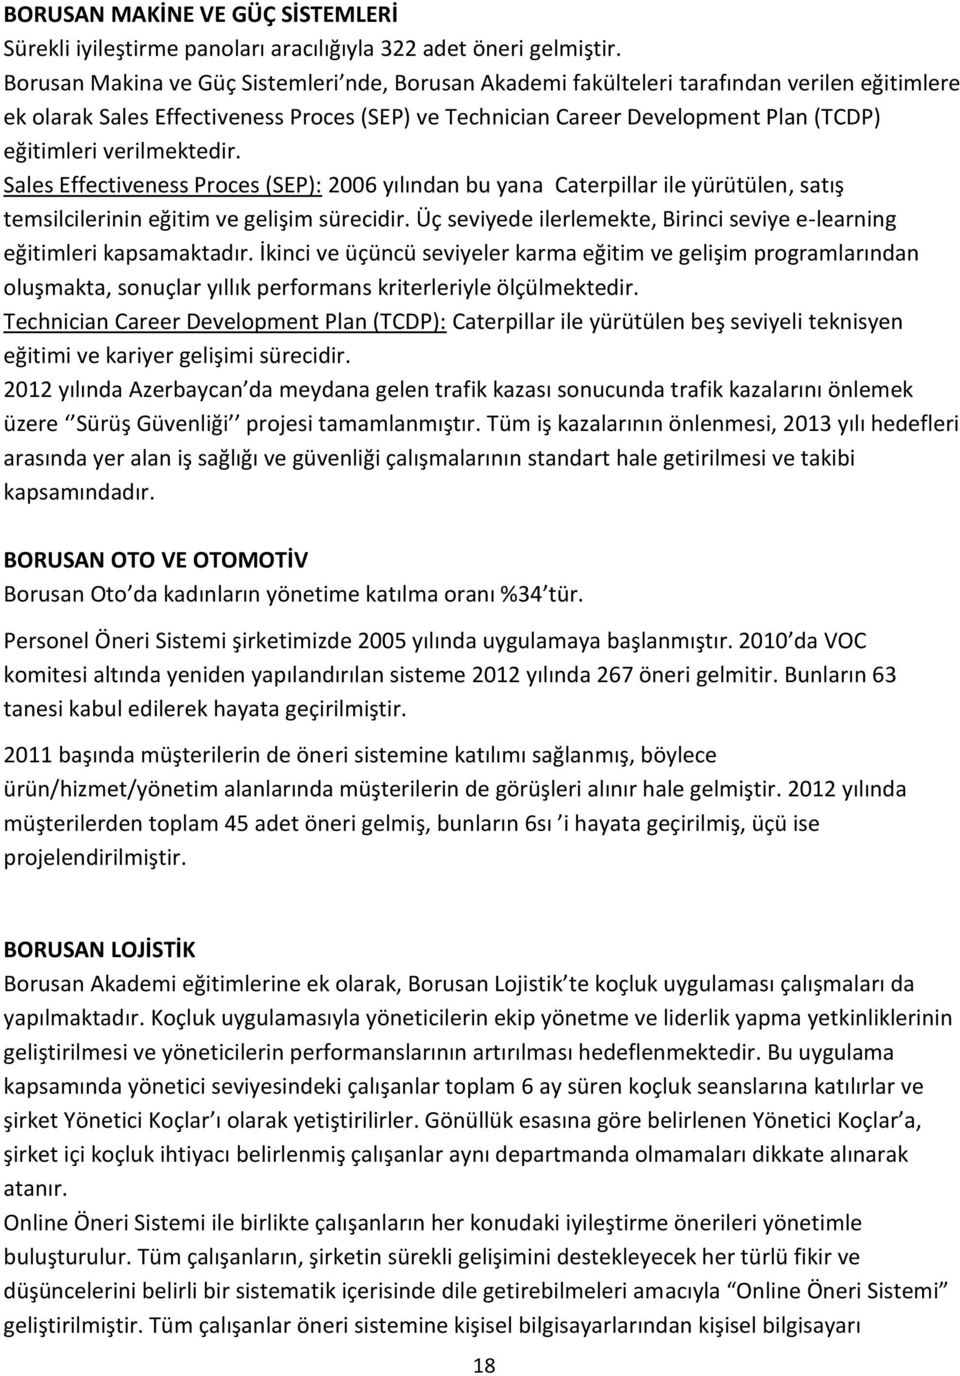 verilmektedir. Sales Effectiveness Proces (SEP): 2006 yılından bu yana Caterpillar ile yürütülen, satış temsilcilerinin eğitim ve gelişim sürecidir.